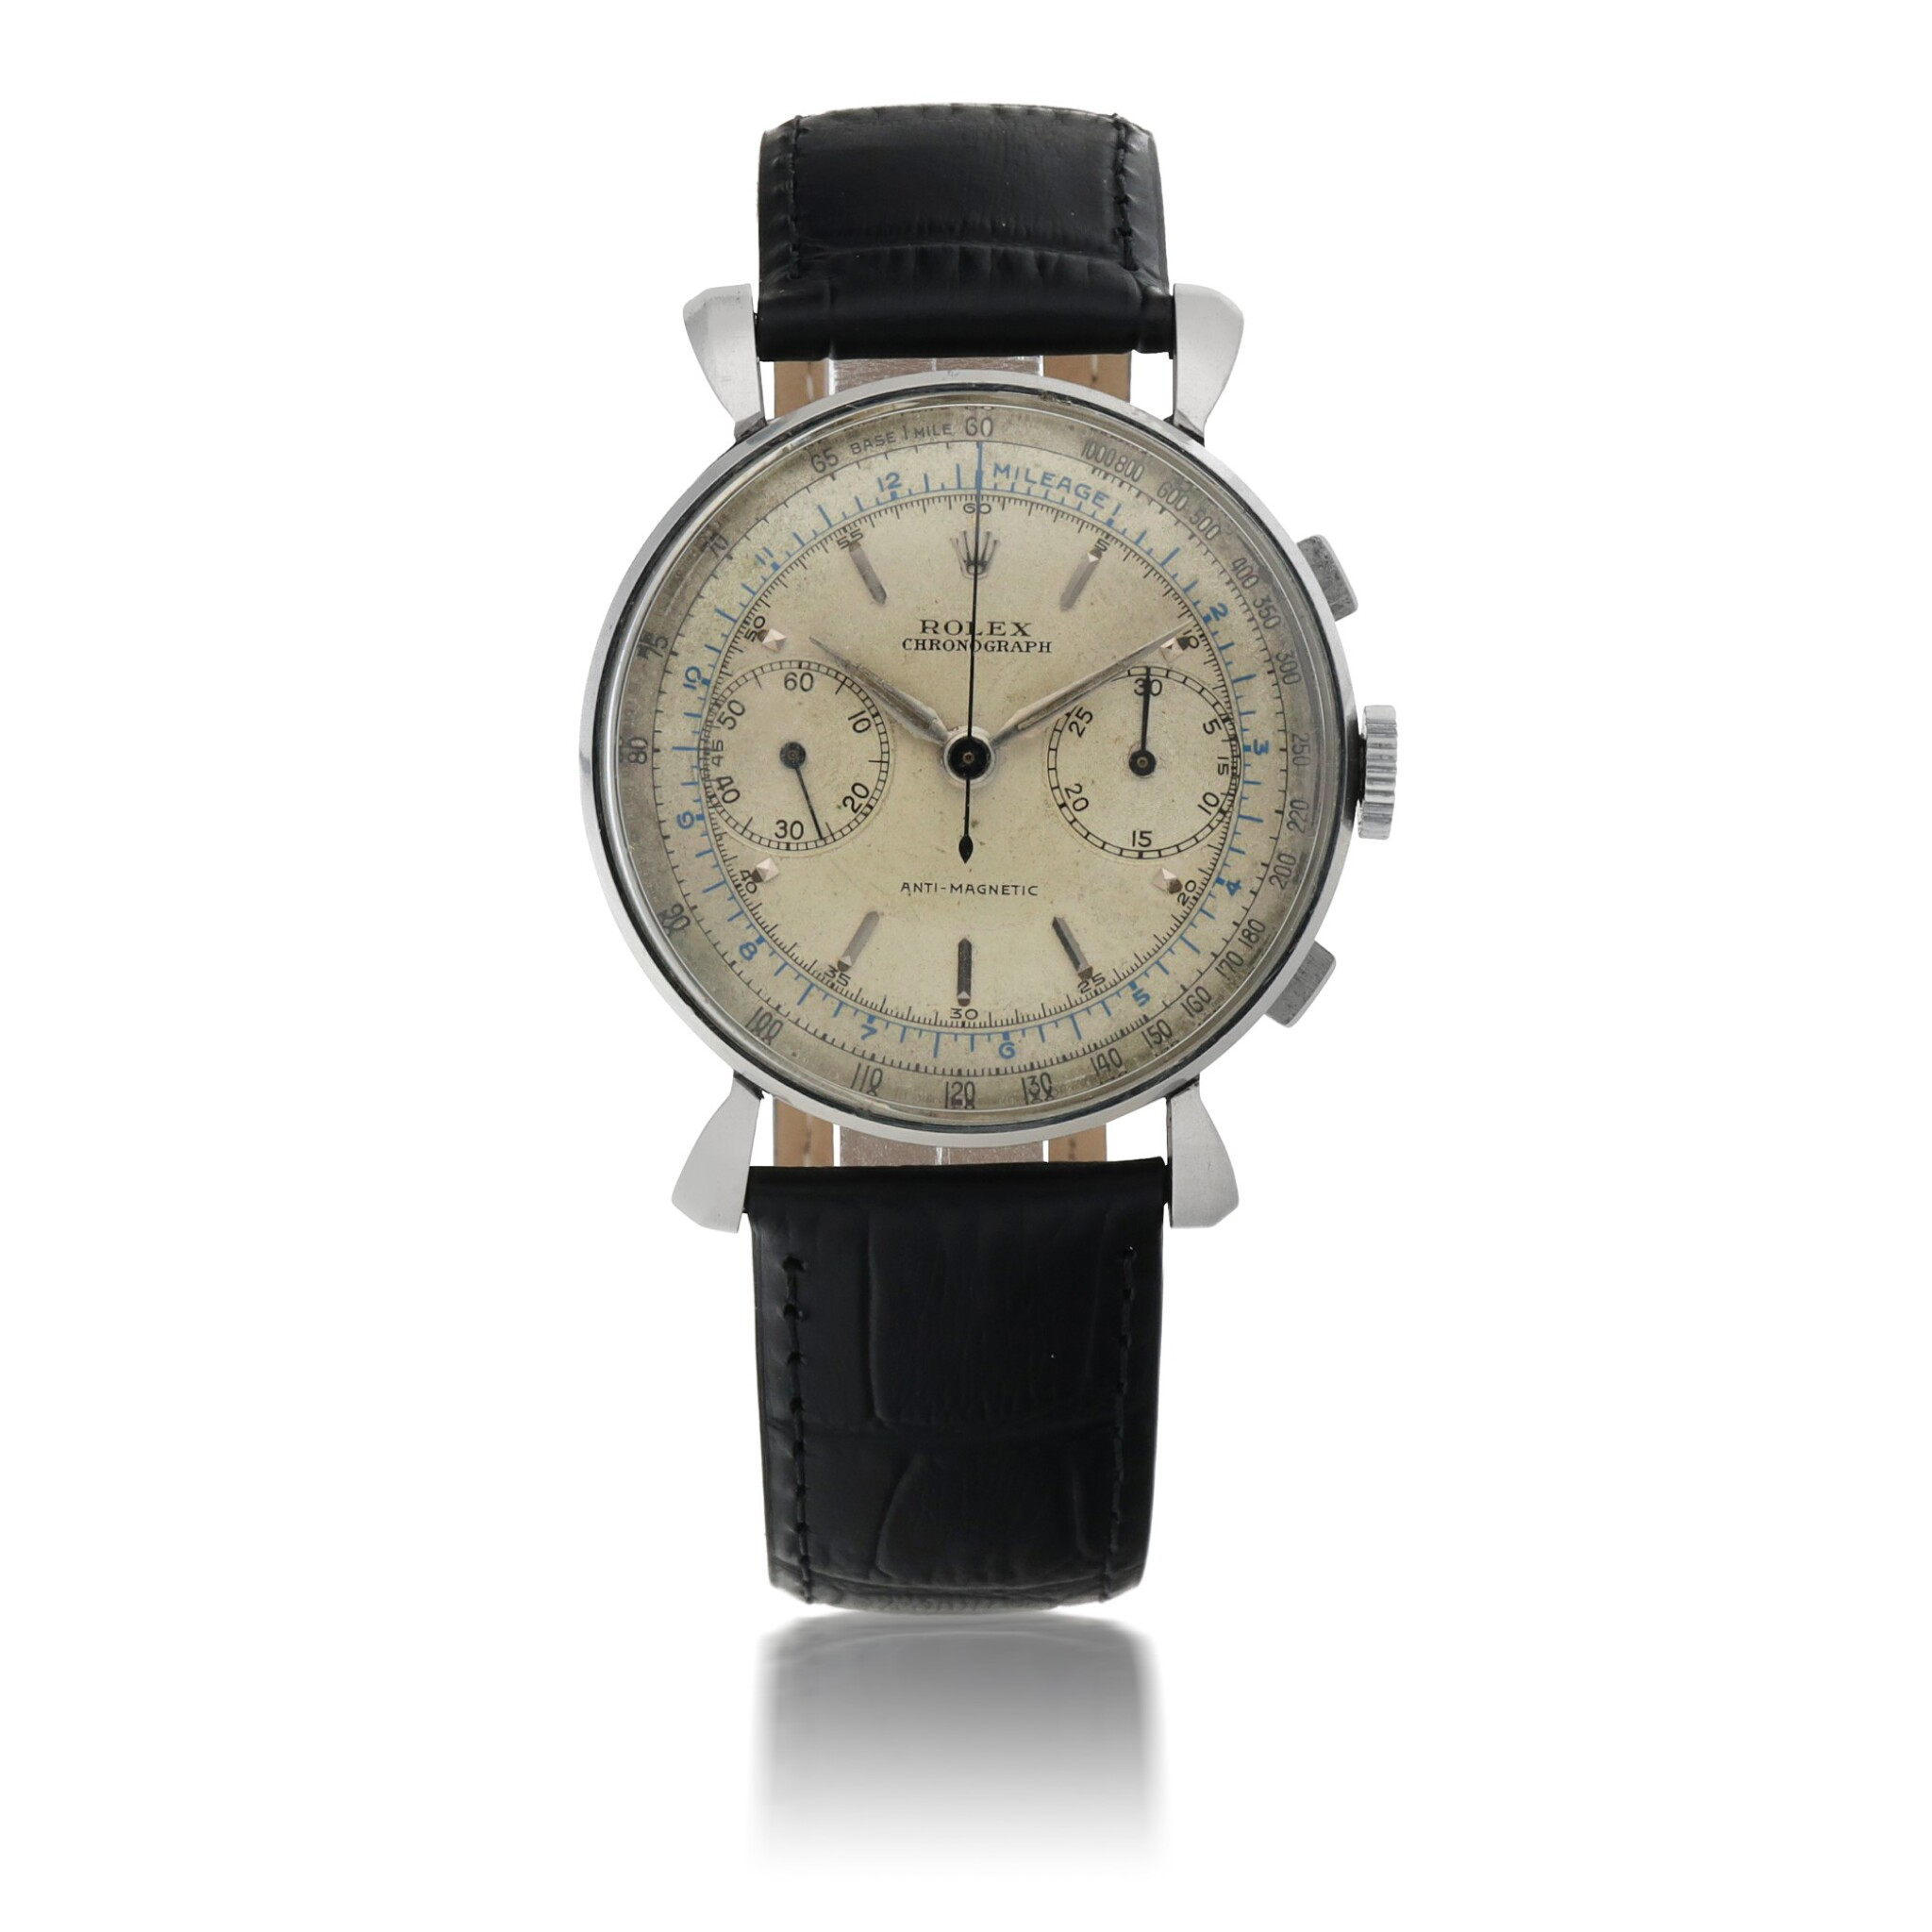 View full screen - View 1 of Lot 910. ROLEX | REF 4099   STAINLESS STEEL CHRONOGRAPH WRISTWATCH WITH FLARED LUGS   CIRCA 1940.